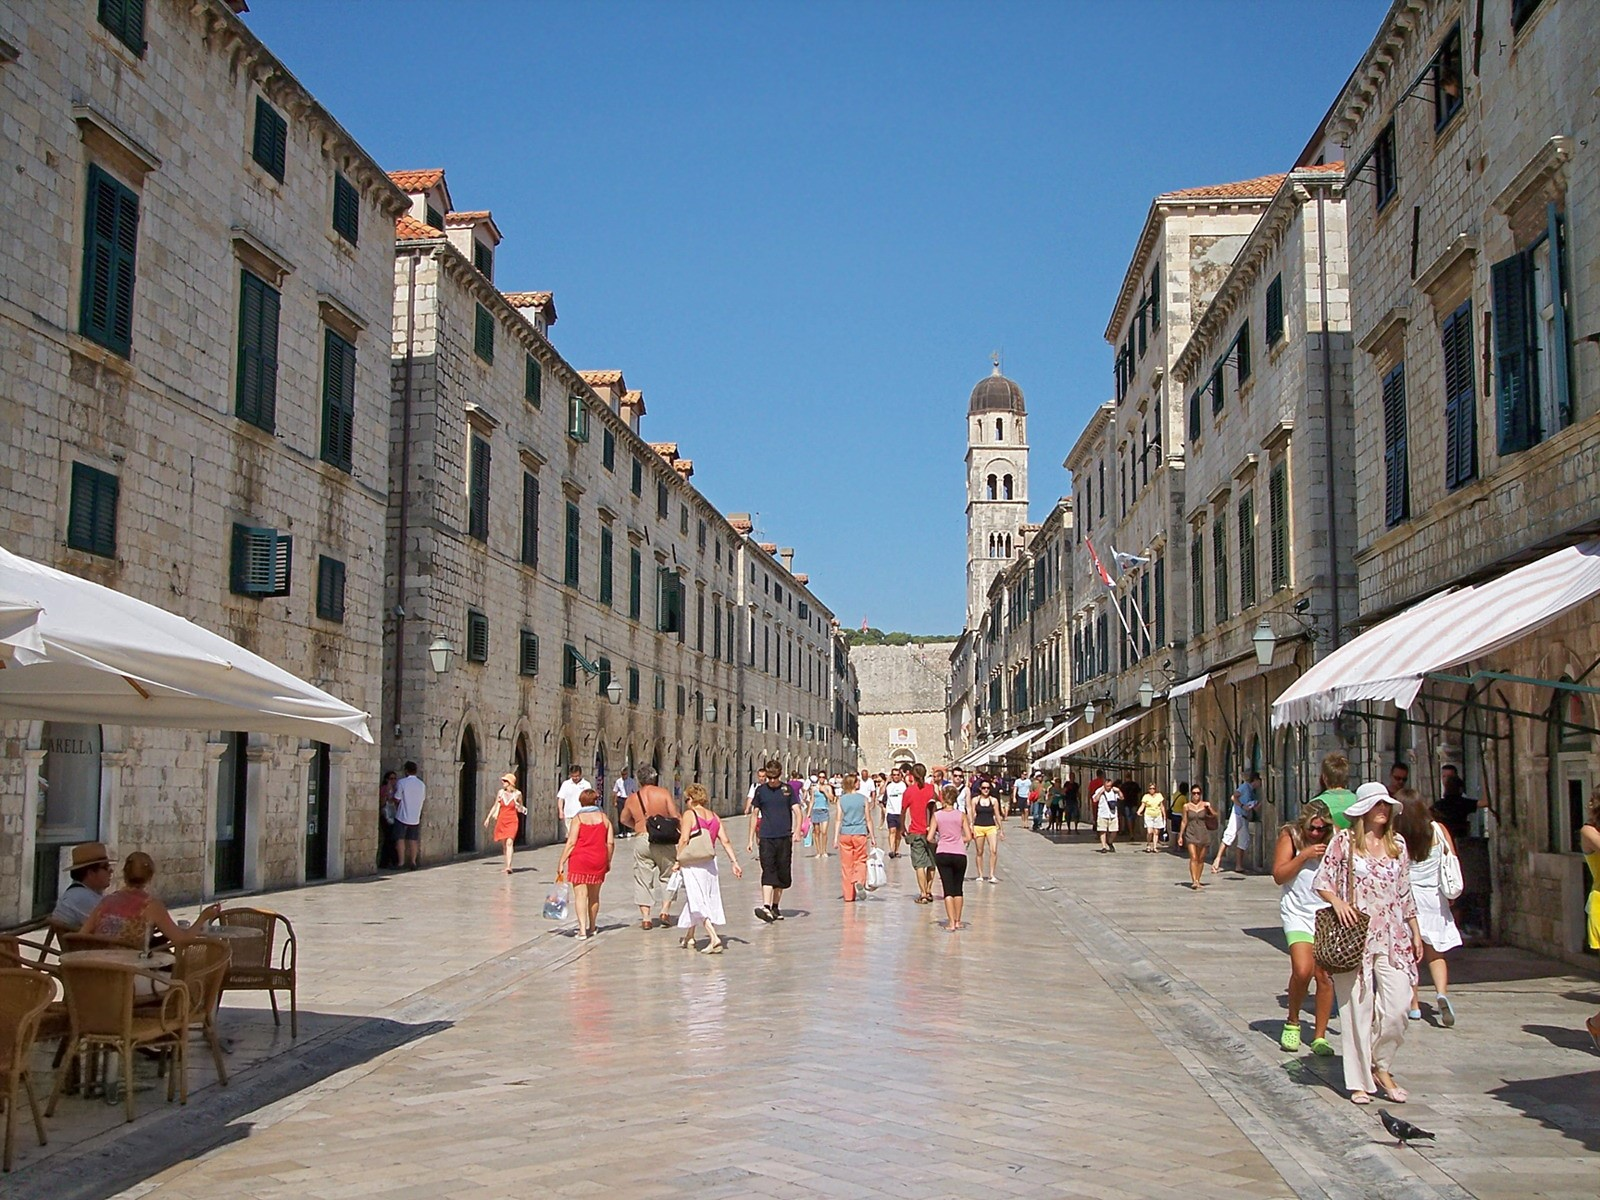 Dubrovnik Travel Guide - Exploring The Treasures of the Adriatic Medieval City